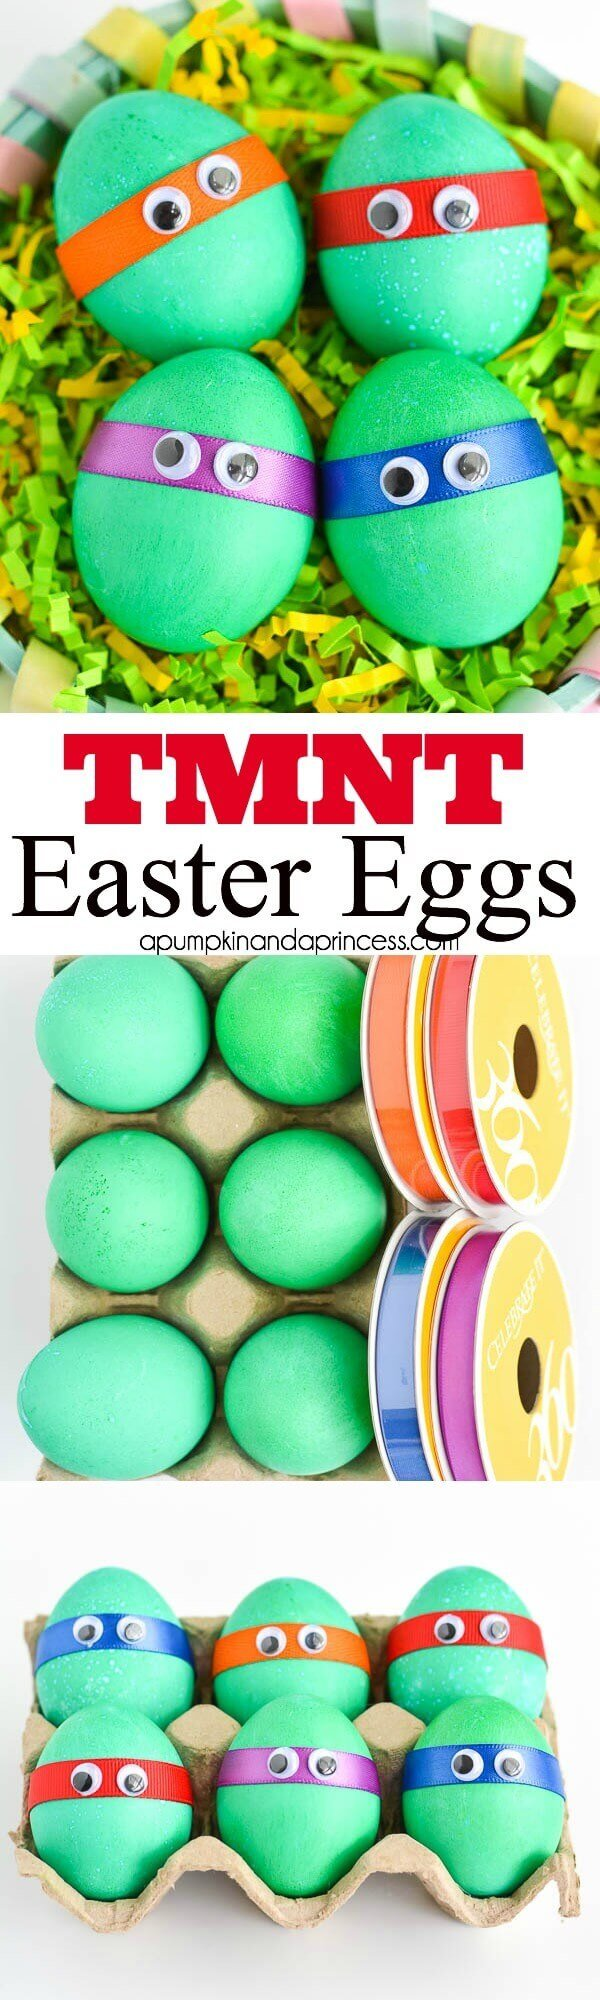 Teenage Mutant Ninja Turtle-themed Easter eggs are easy and fun